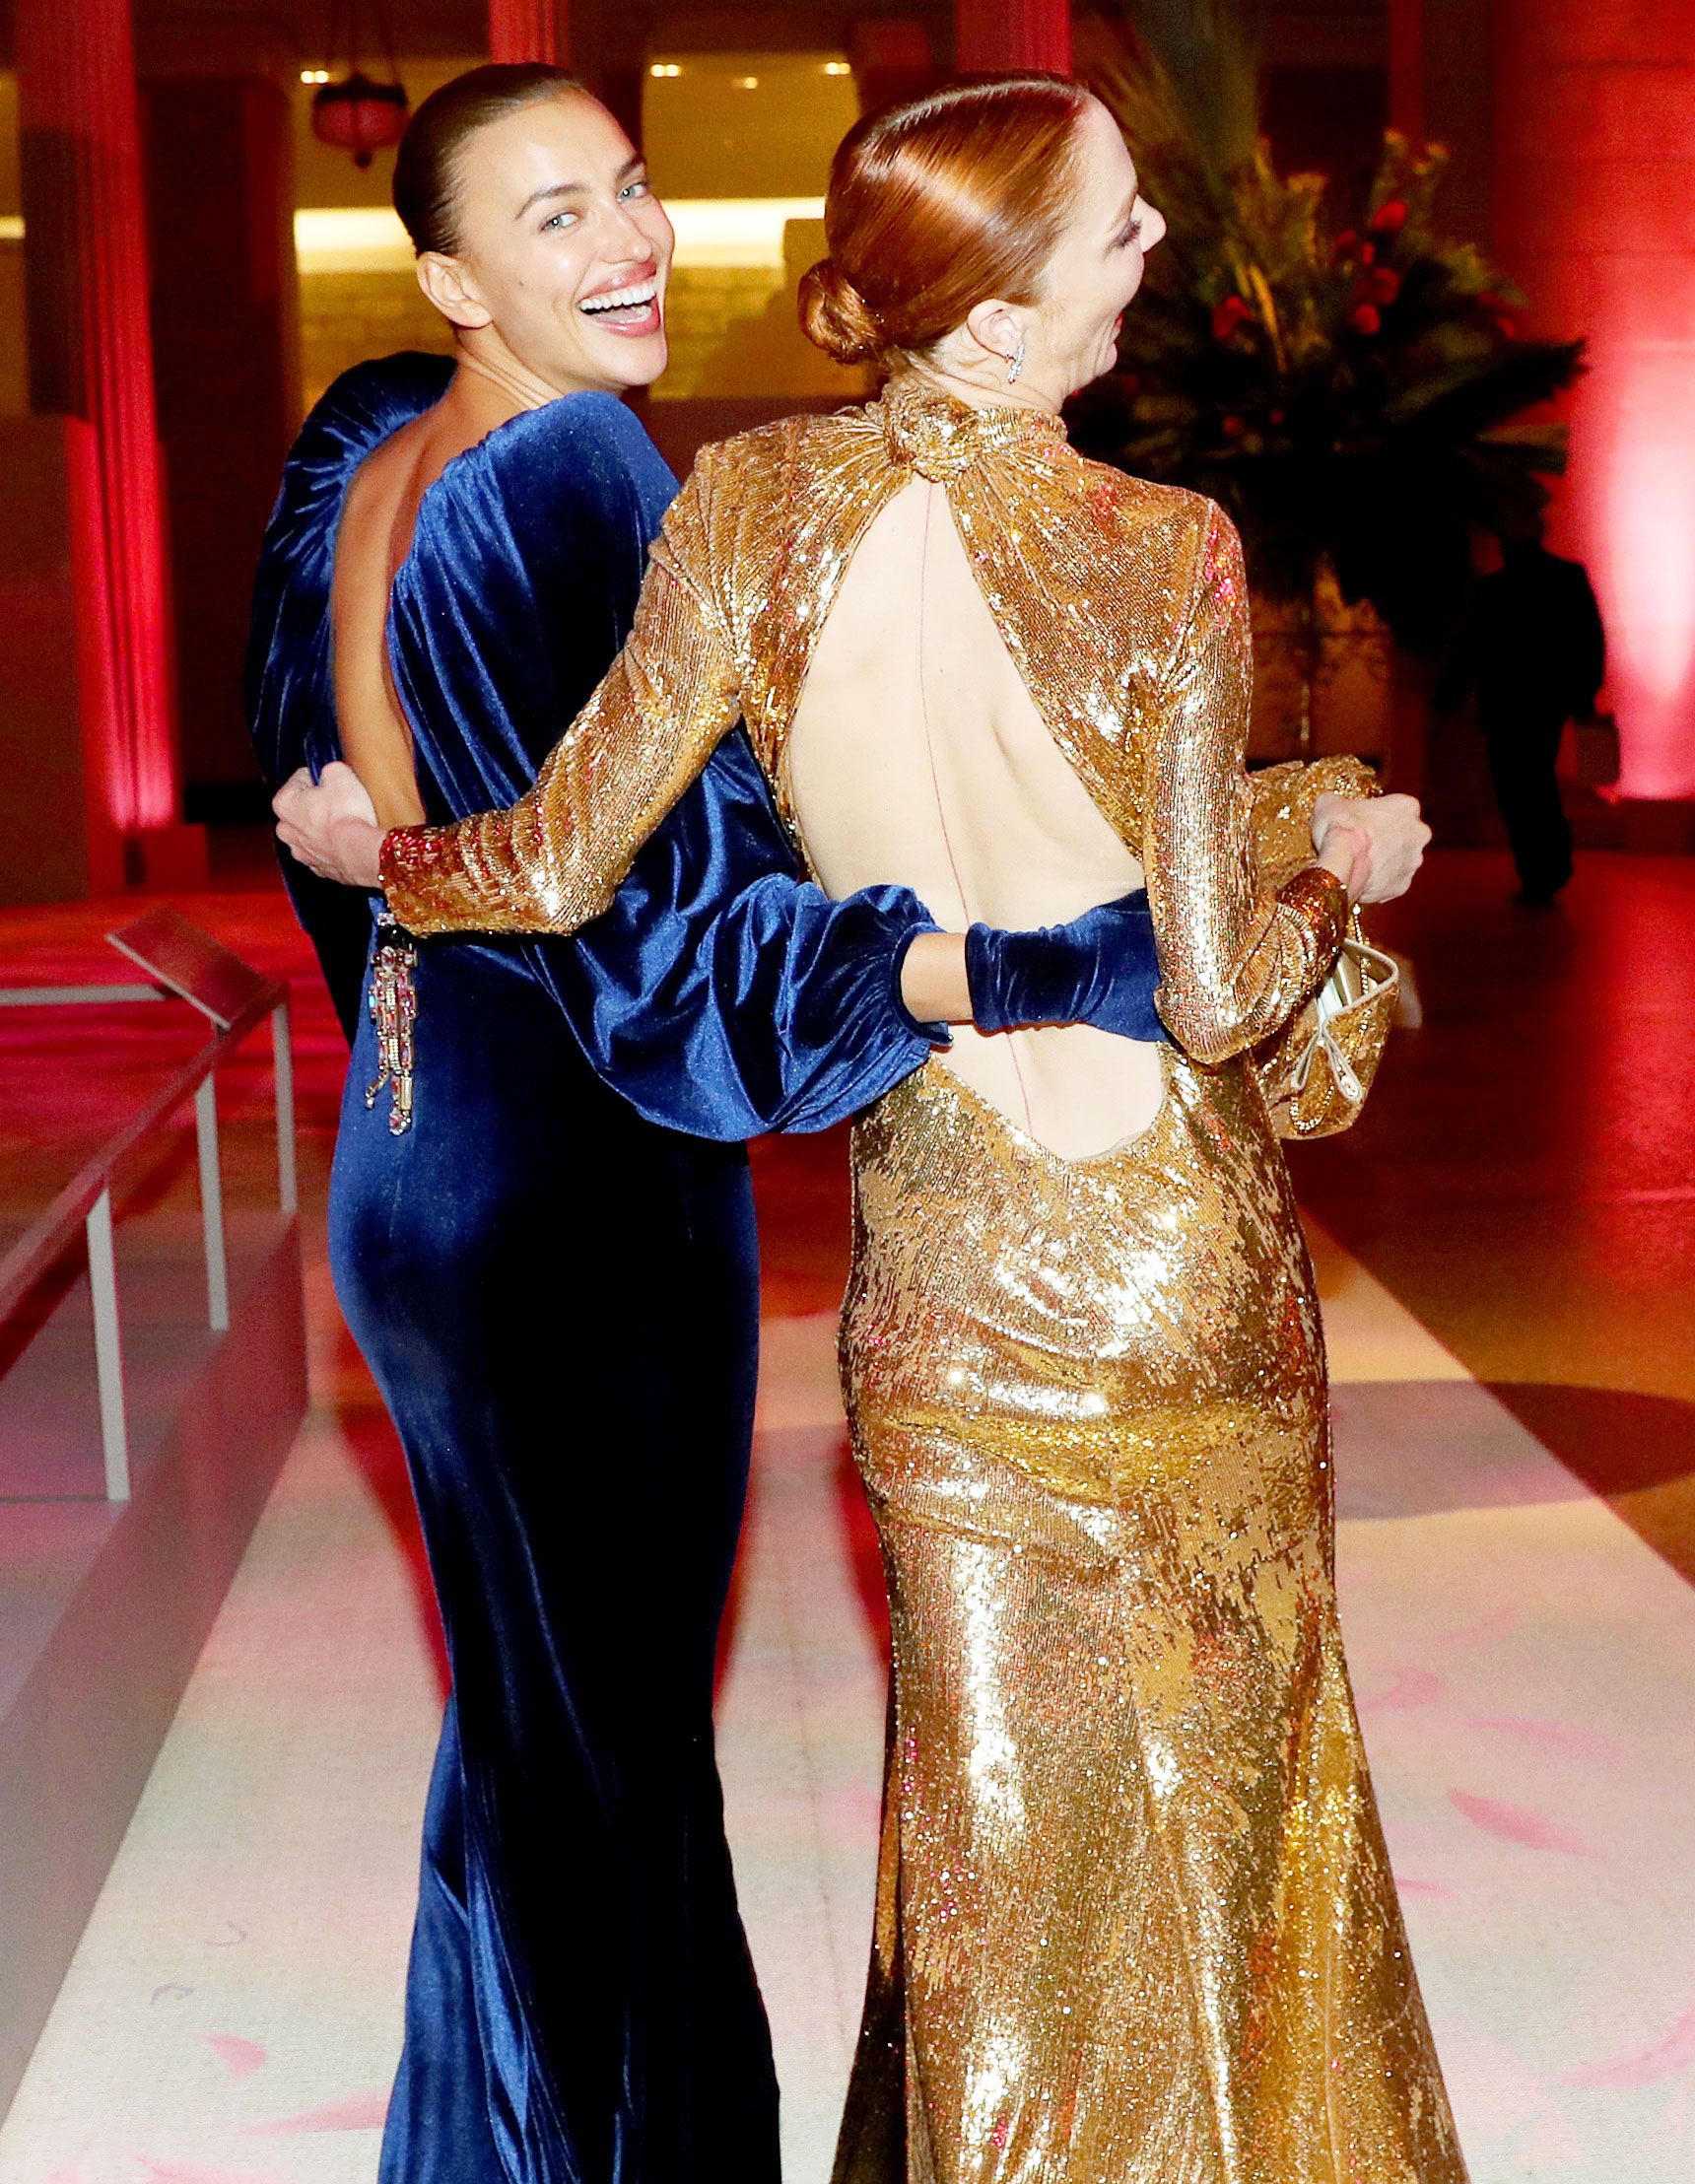 Met Gala 2019 What You Didnt See Irina Shayk Mariacarla Boscono - Irina Shayk and Mariacarla Boscono laughed as they walked into the get-together with their arms around each other.